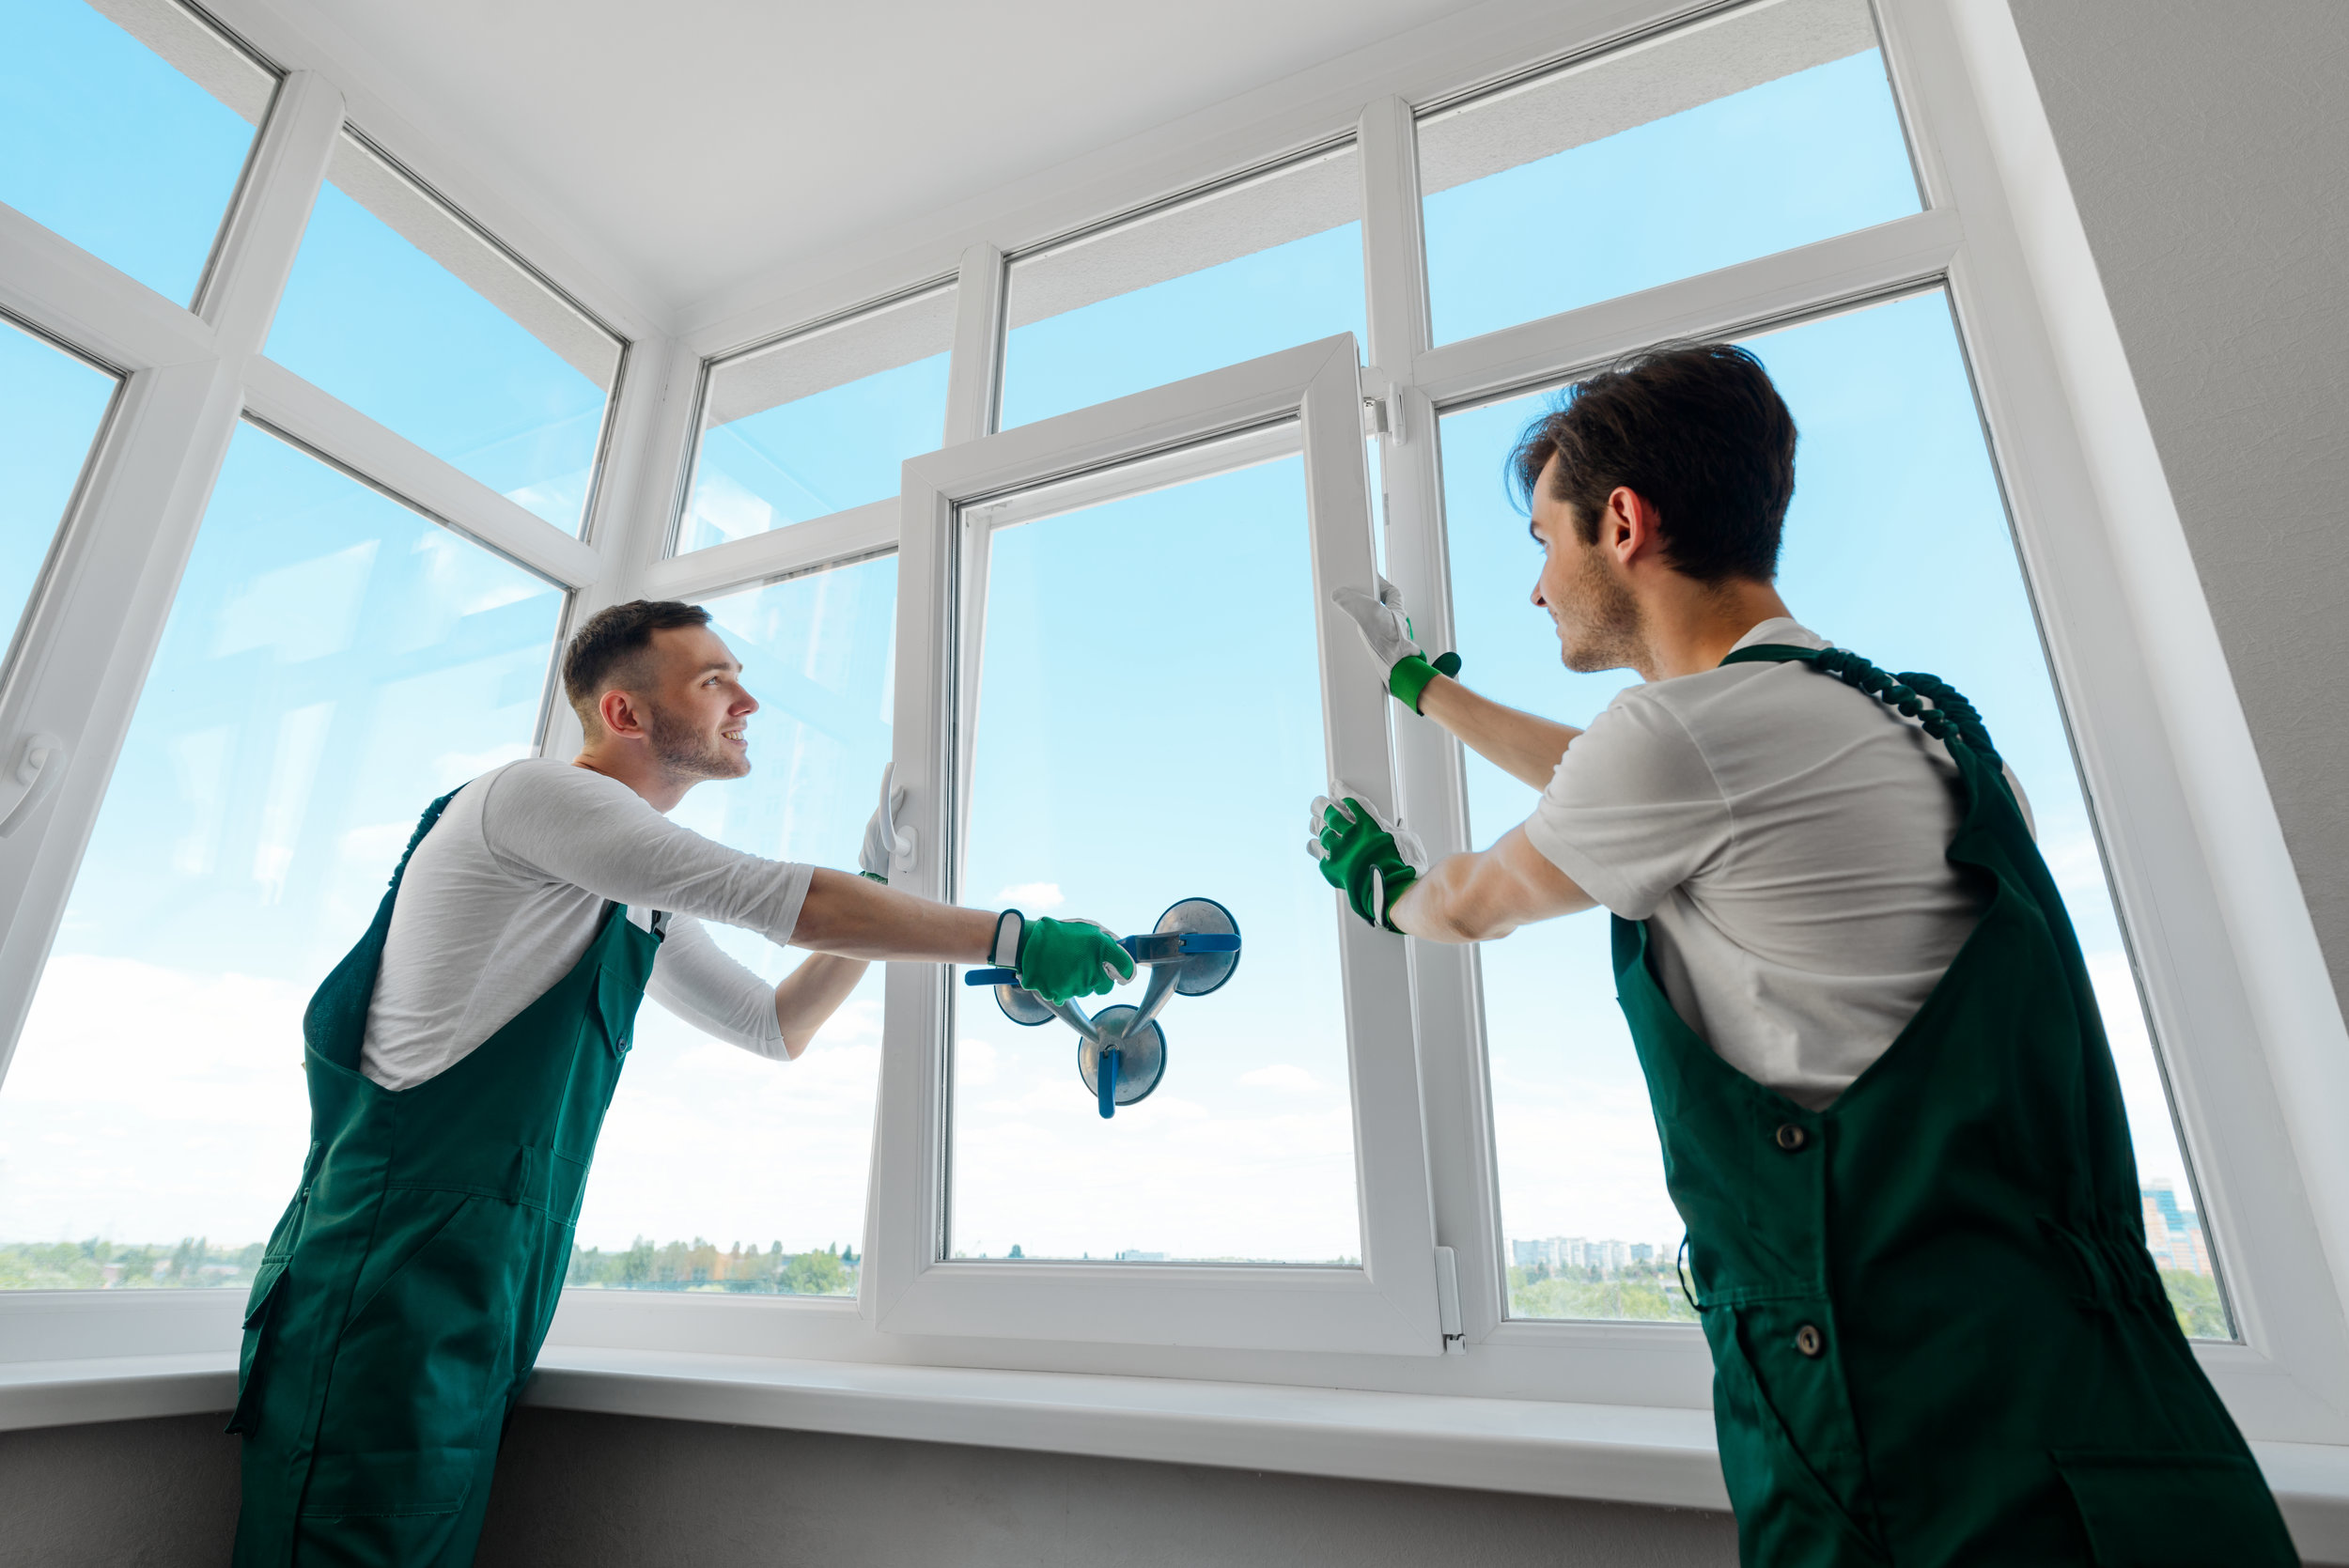 Window Installers - Schedule a free estimate for Los Angeles best window installers for all major brands including milgard, atrium, plygem windows and doors.